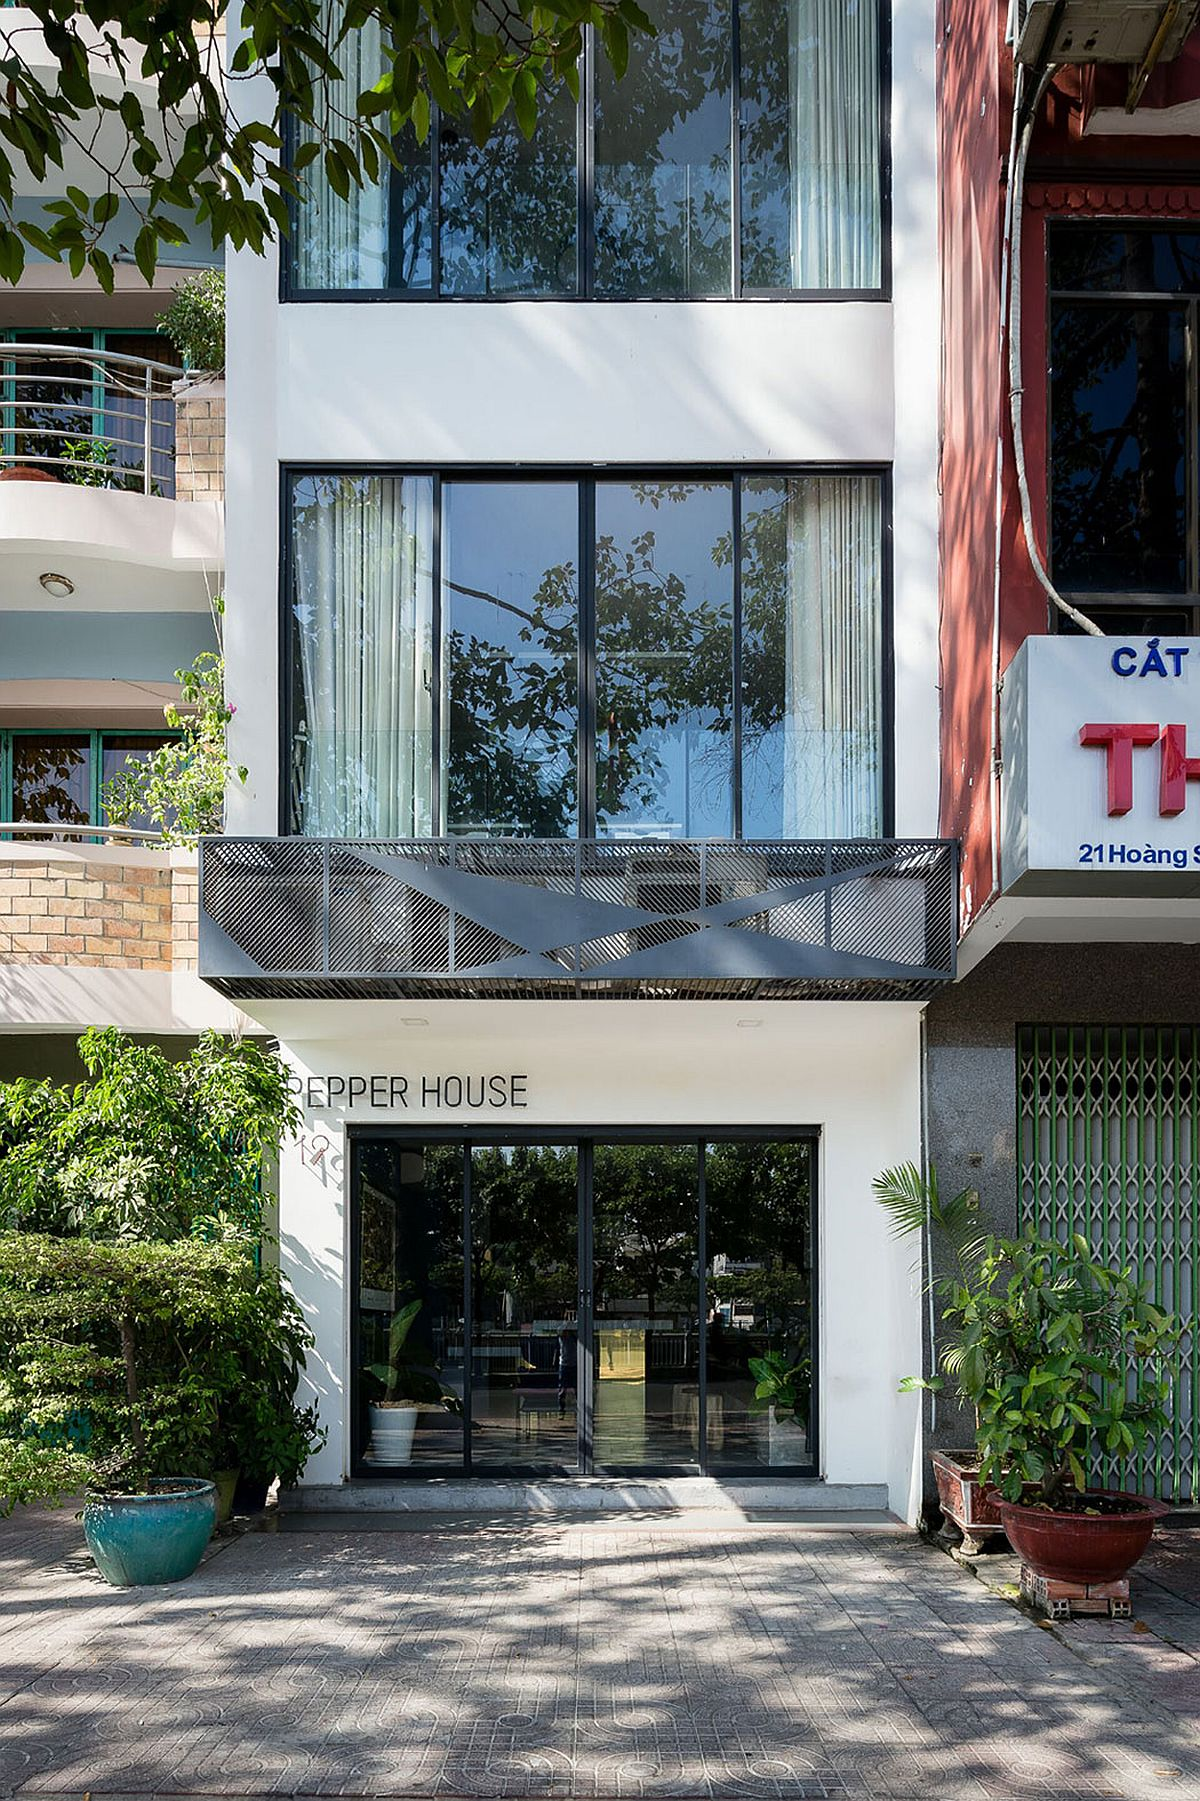 Revamped Pepper House in Ho Chi Minh City, Vietnam